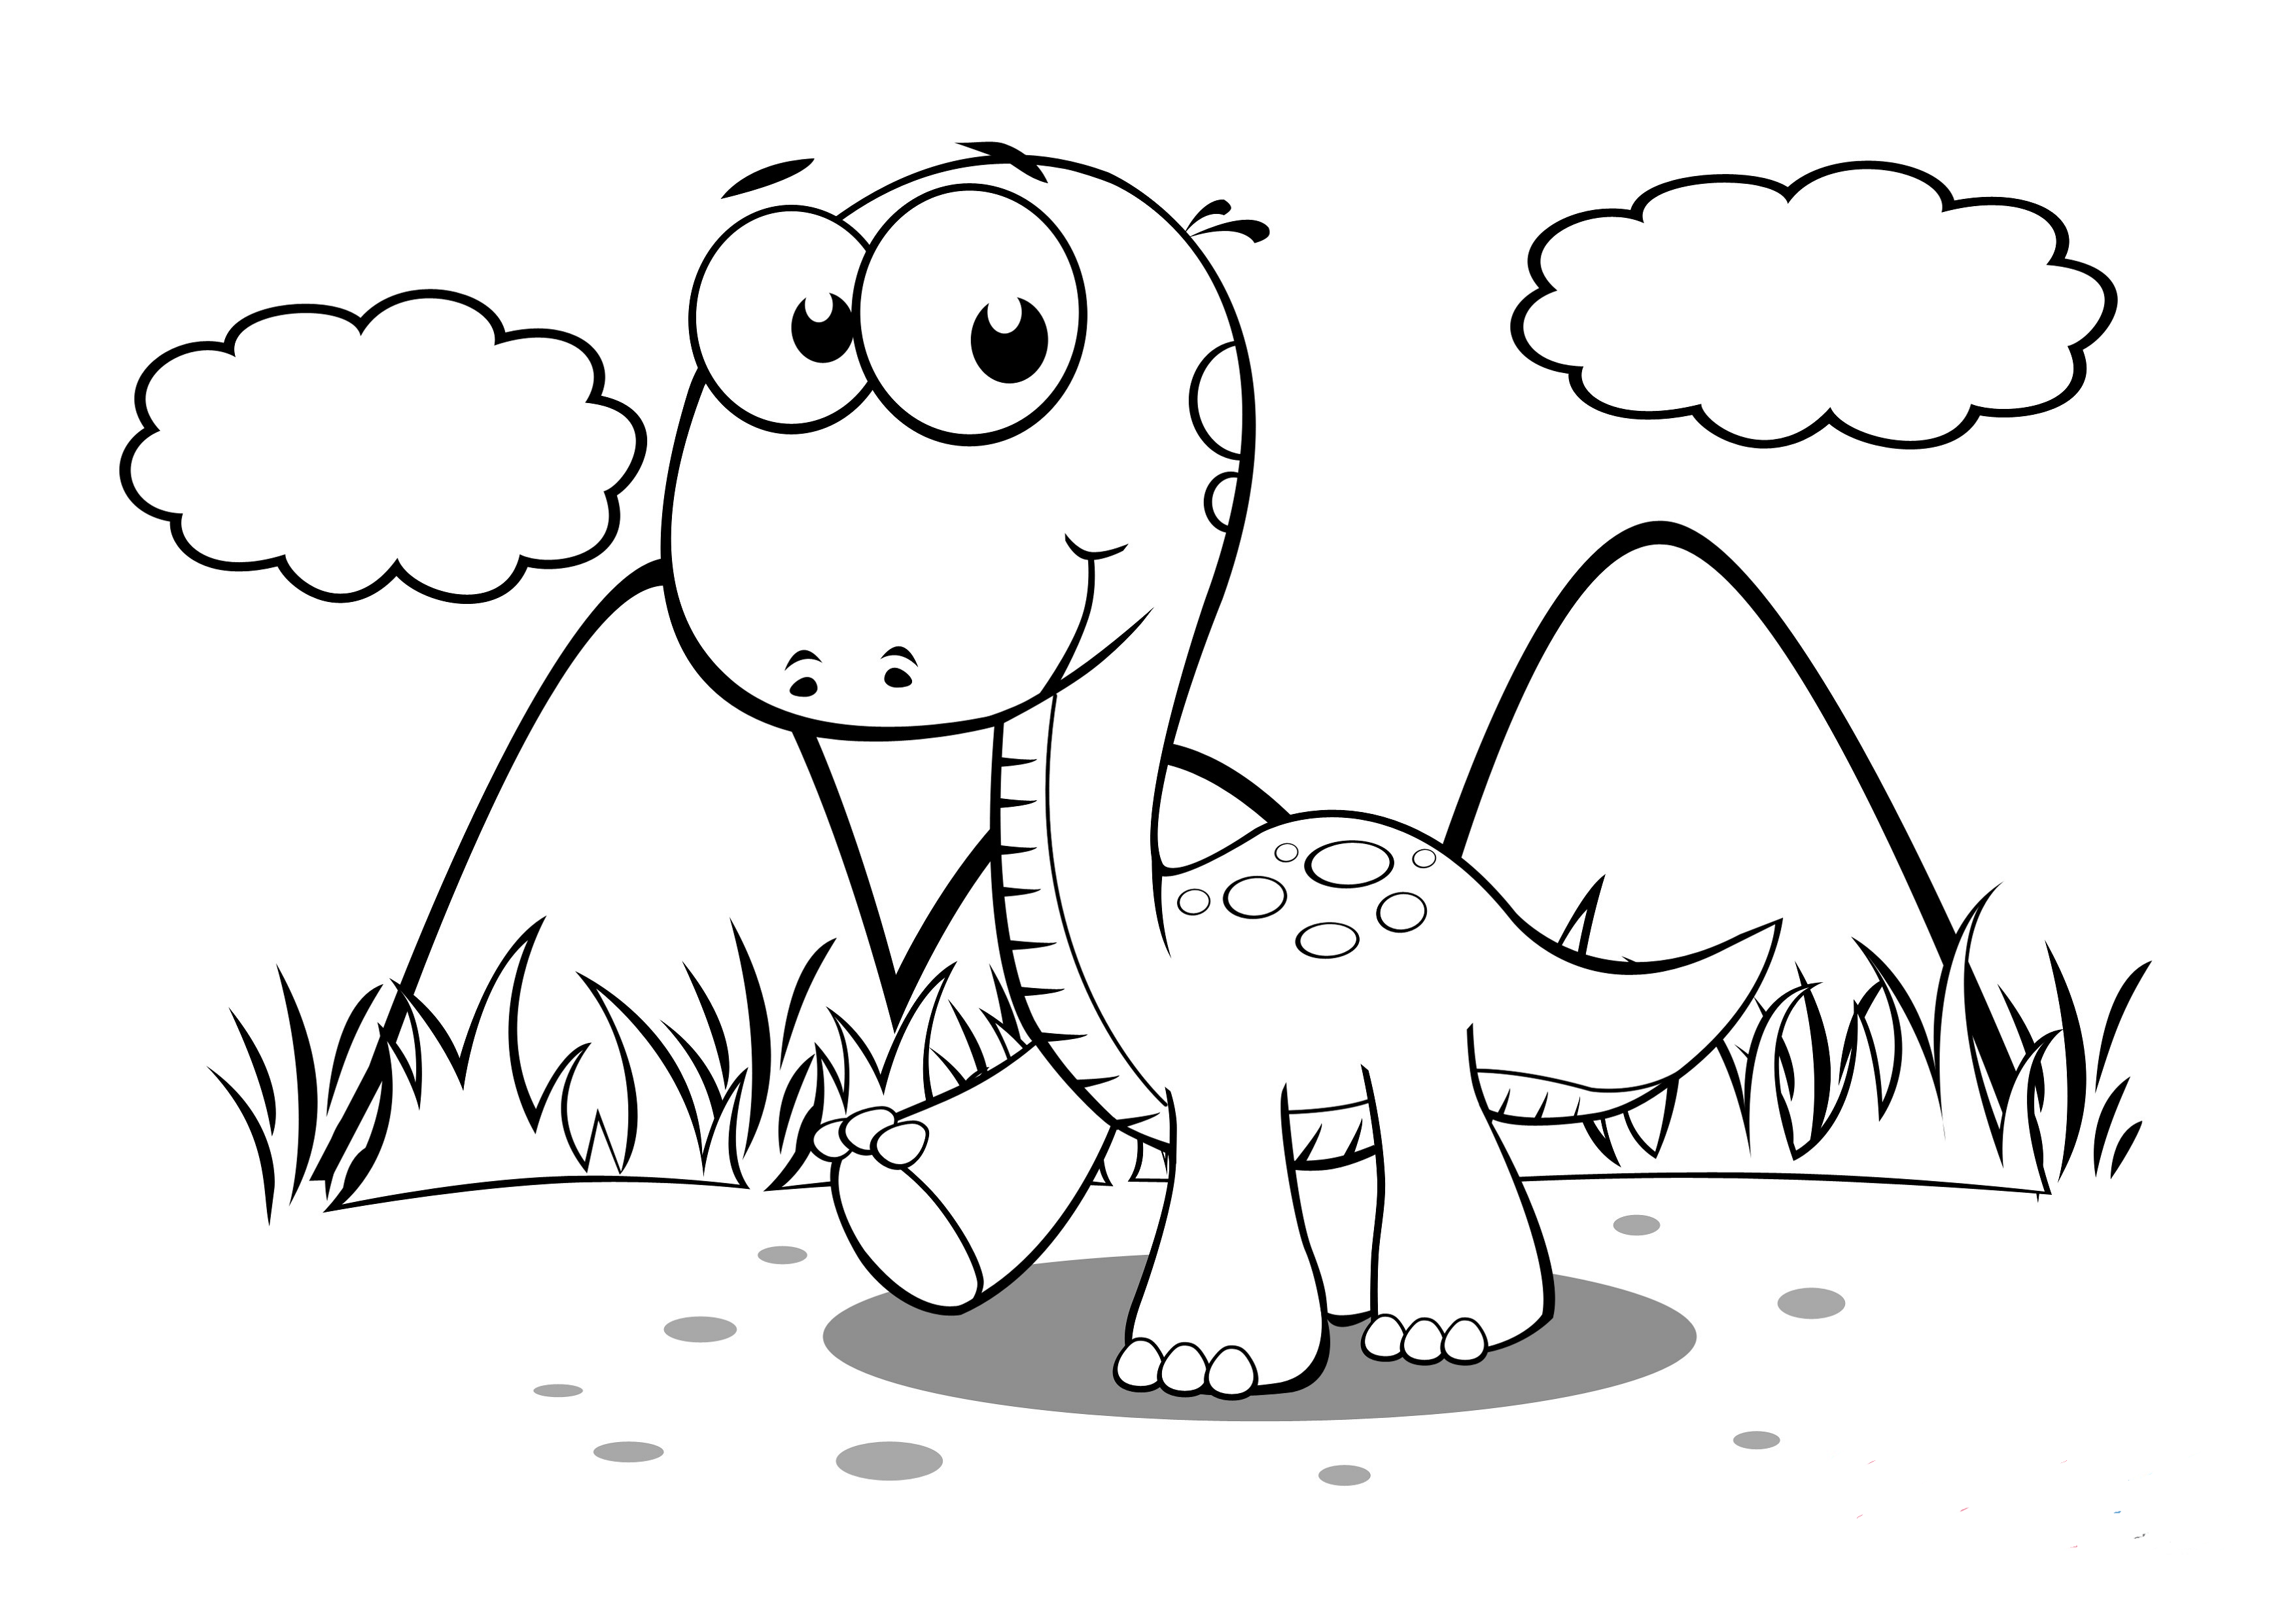 coloring pages of dinosaurs for preschoolers baby dinosaur coloring pages to download and print for free pages dinosaurs of preschoolers coloring for